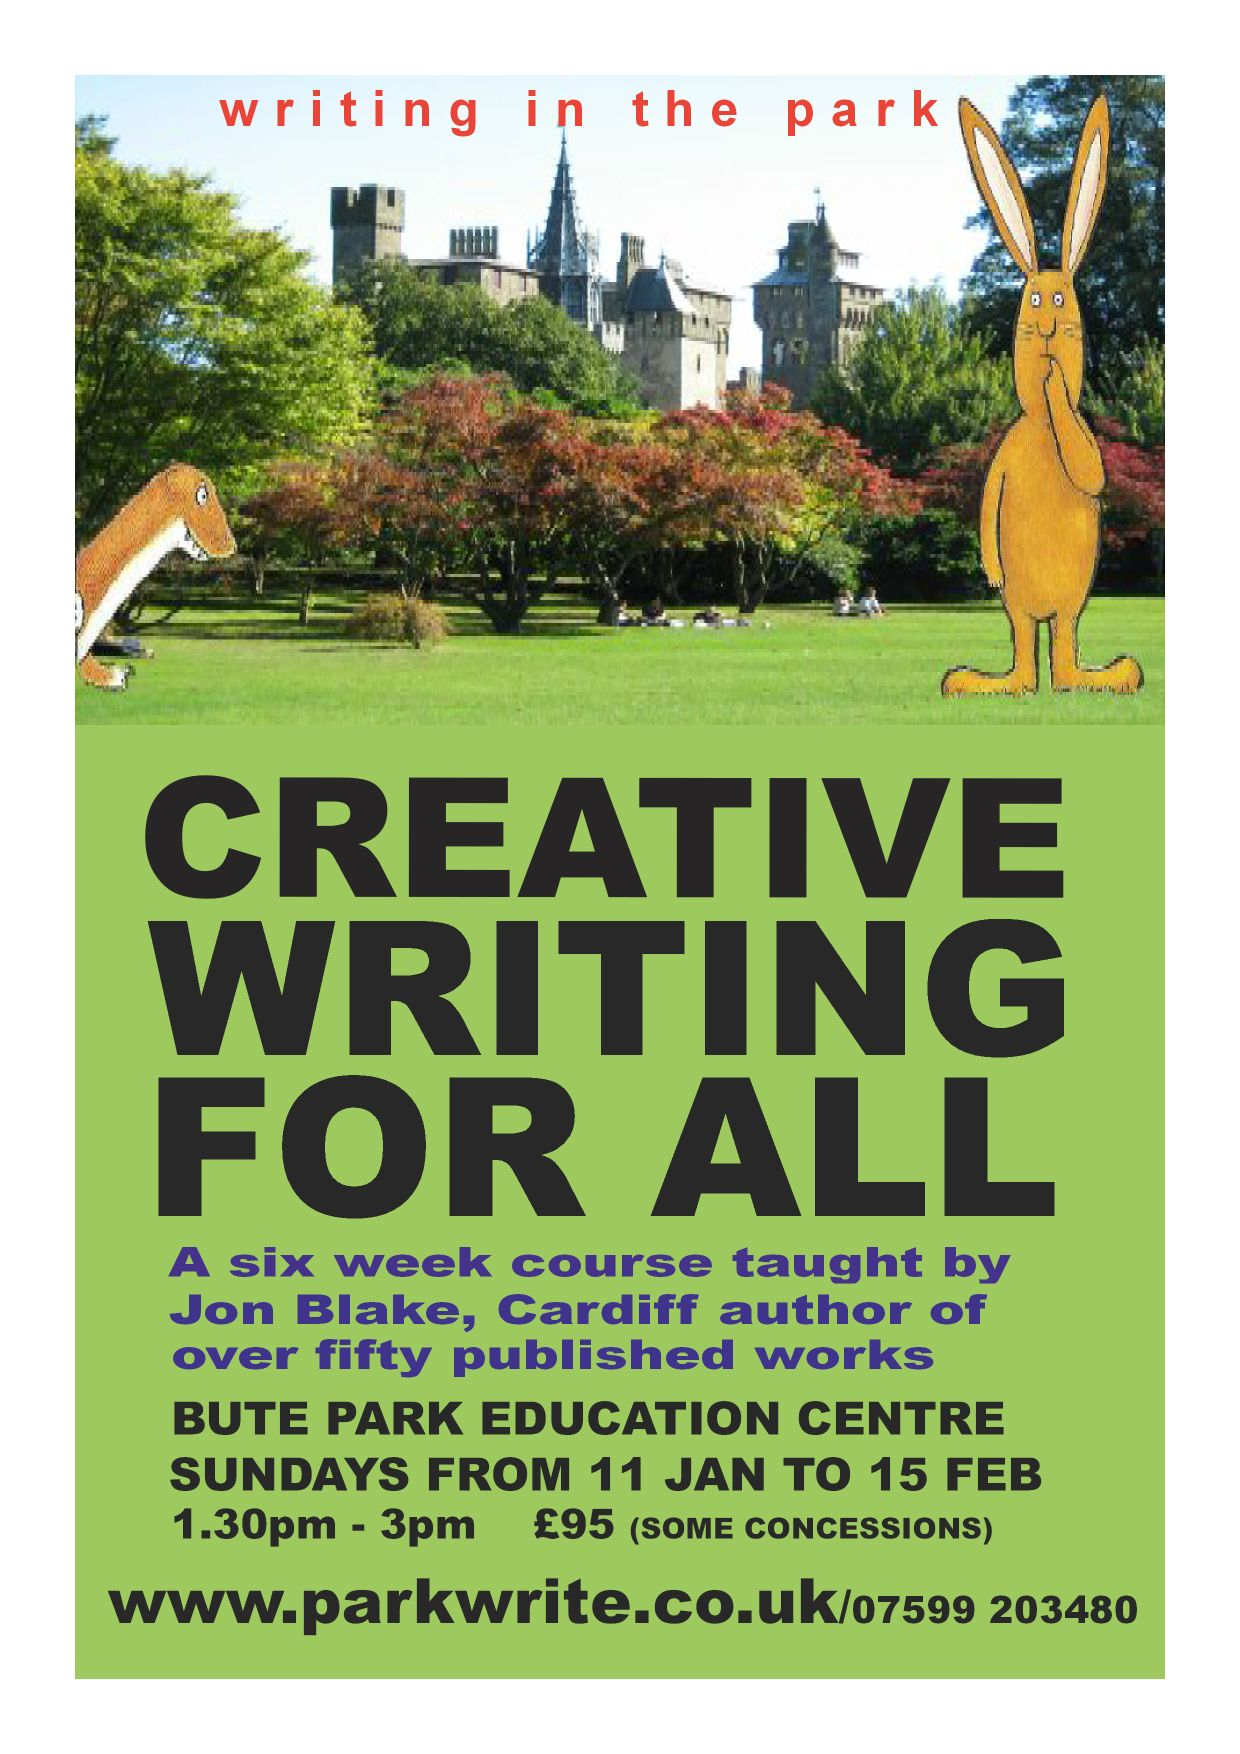 Creative Writing Online Courses - UEA